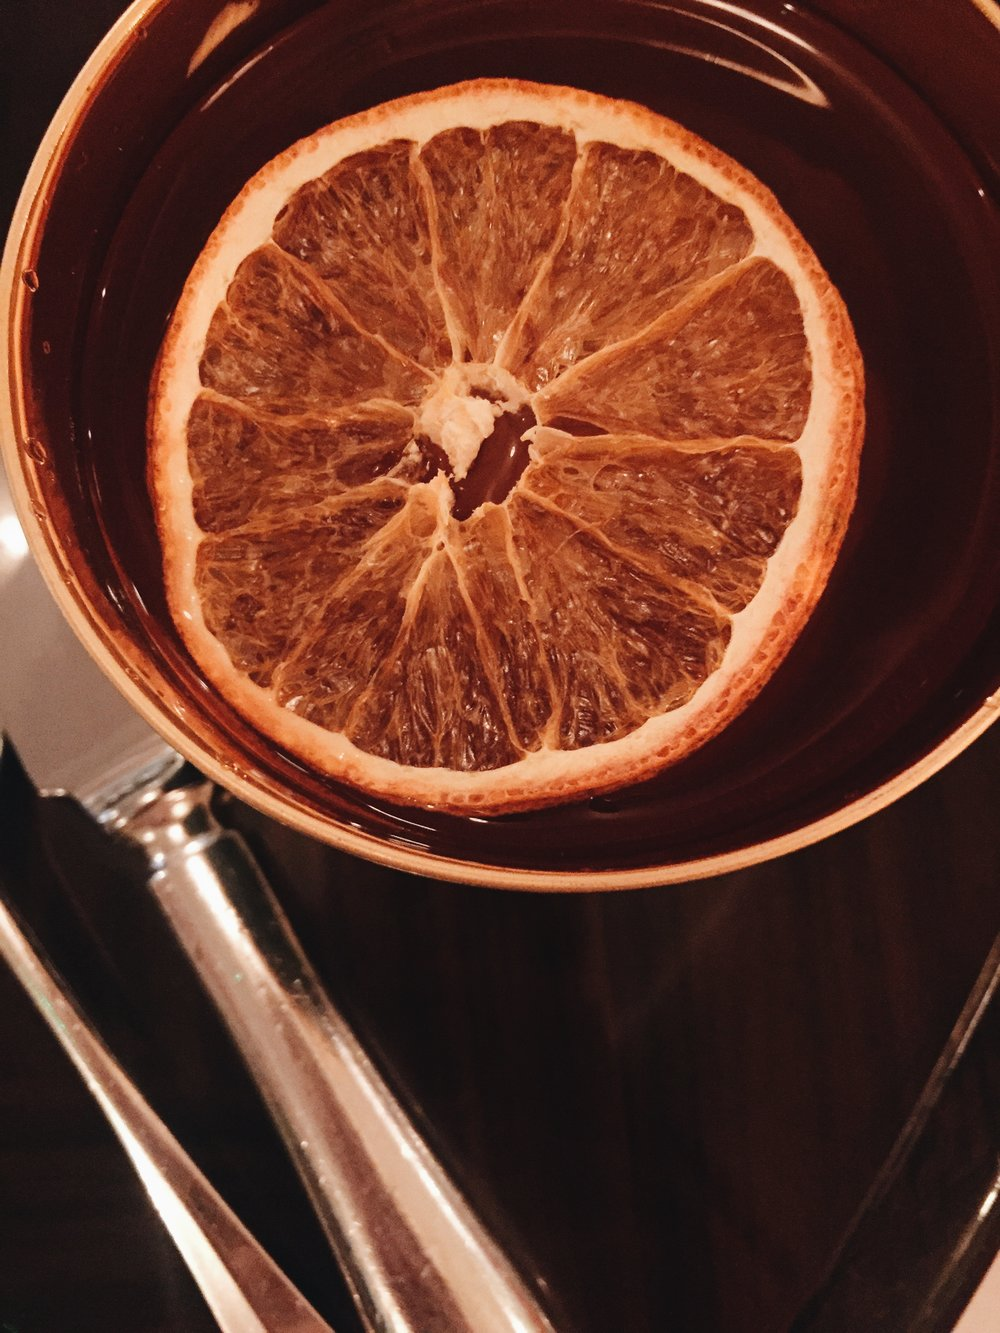 The Negroni at 45 Jermyn Street.